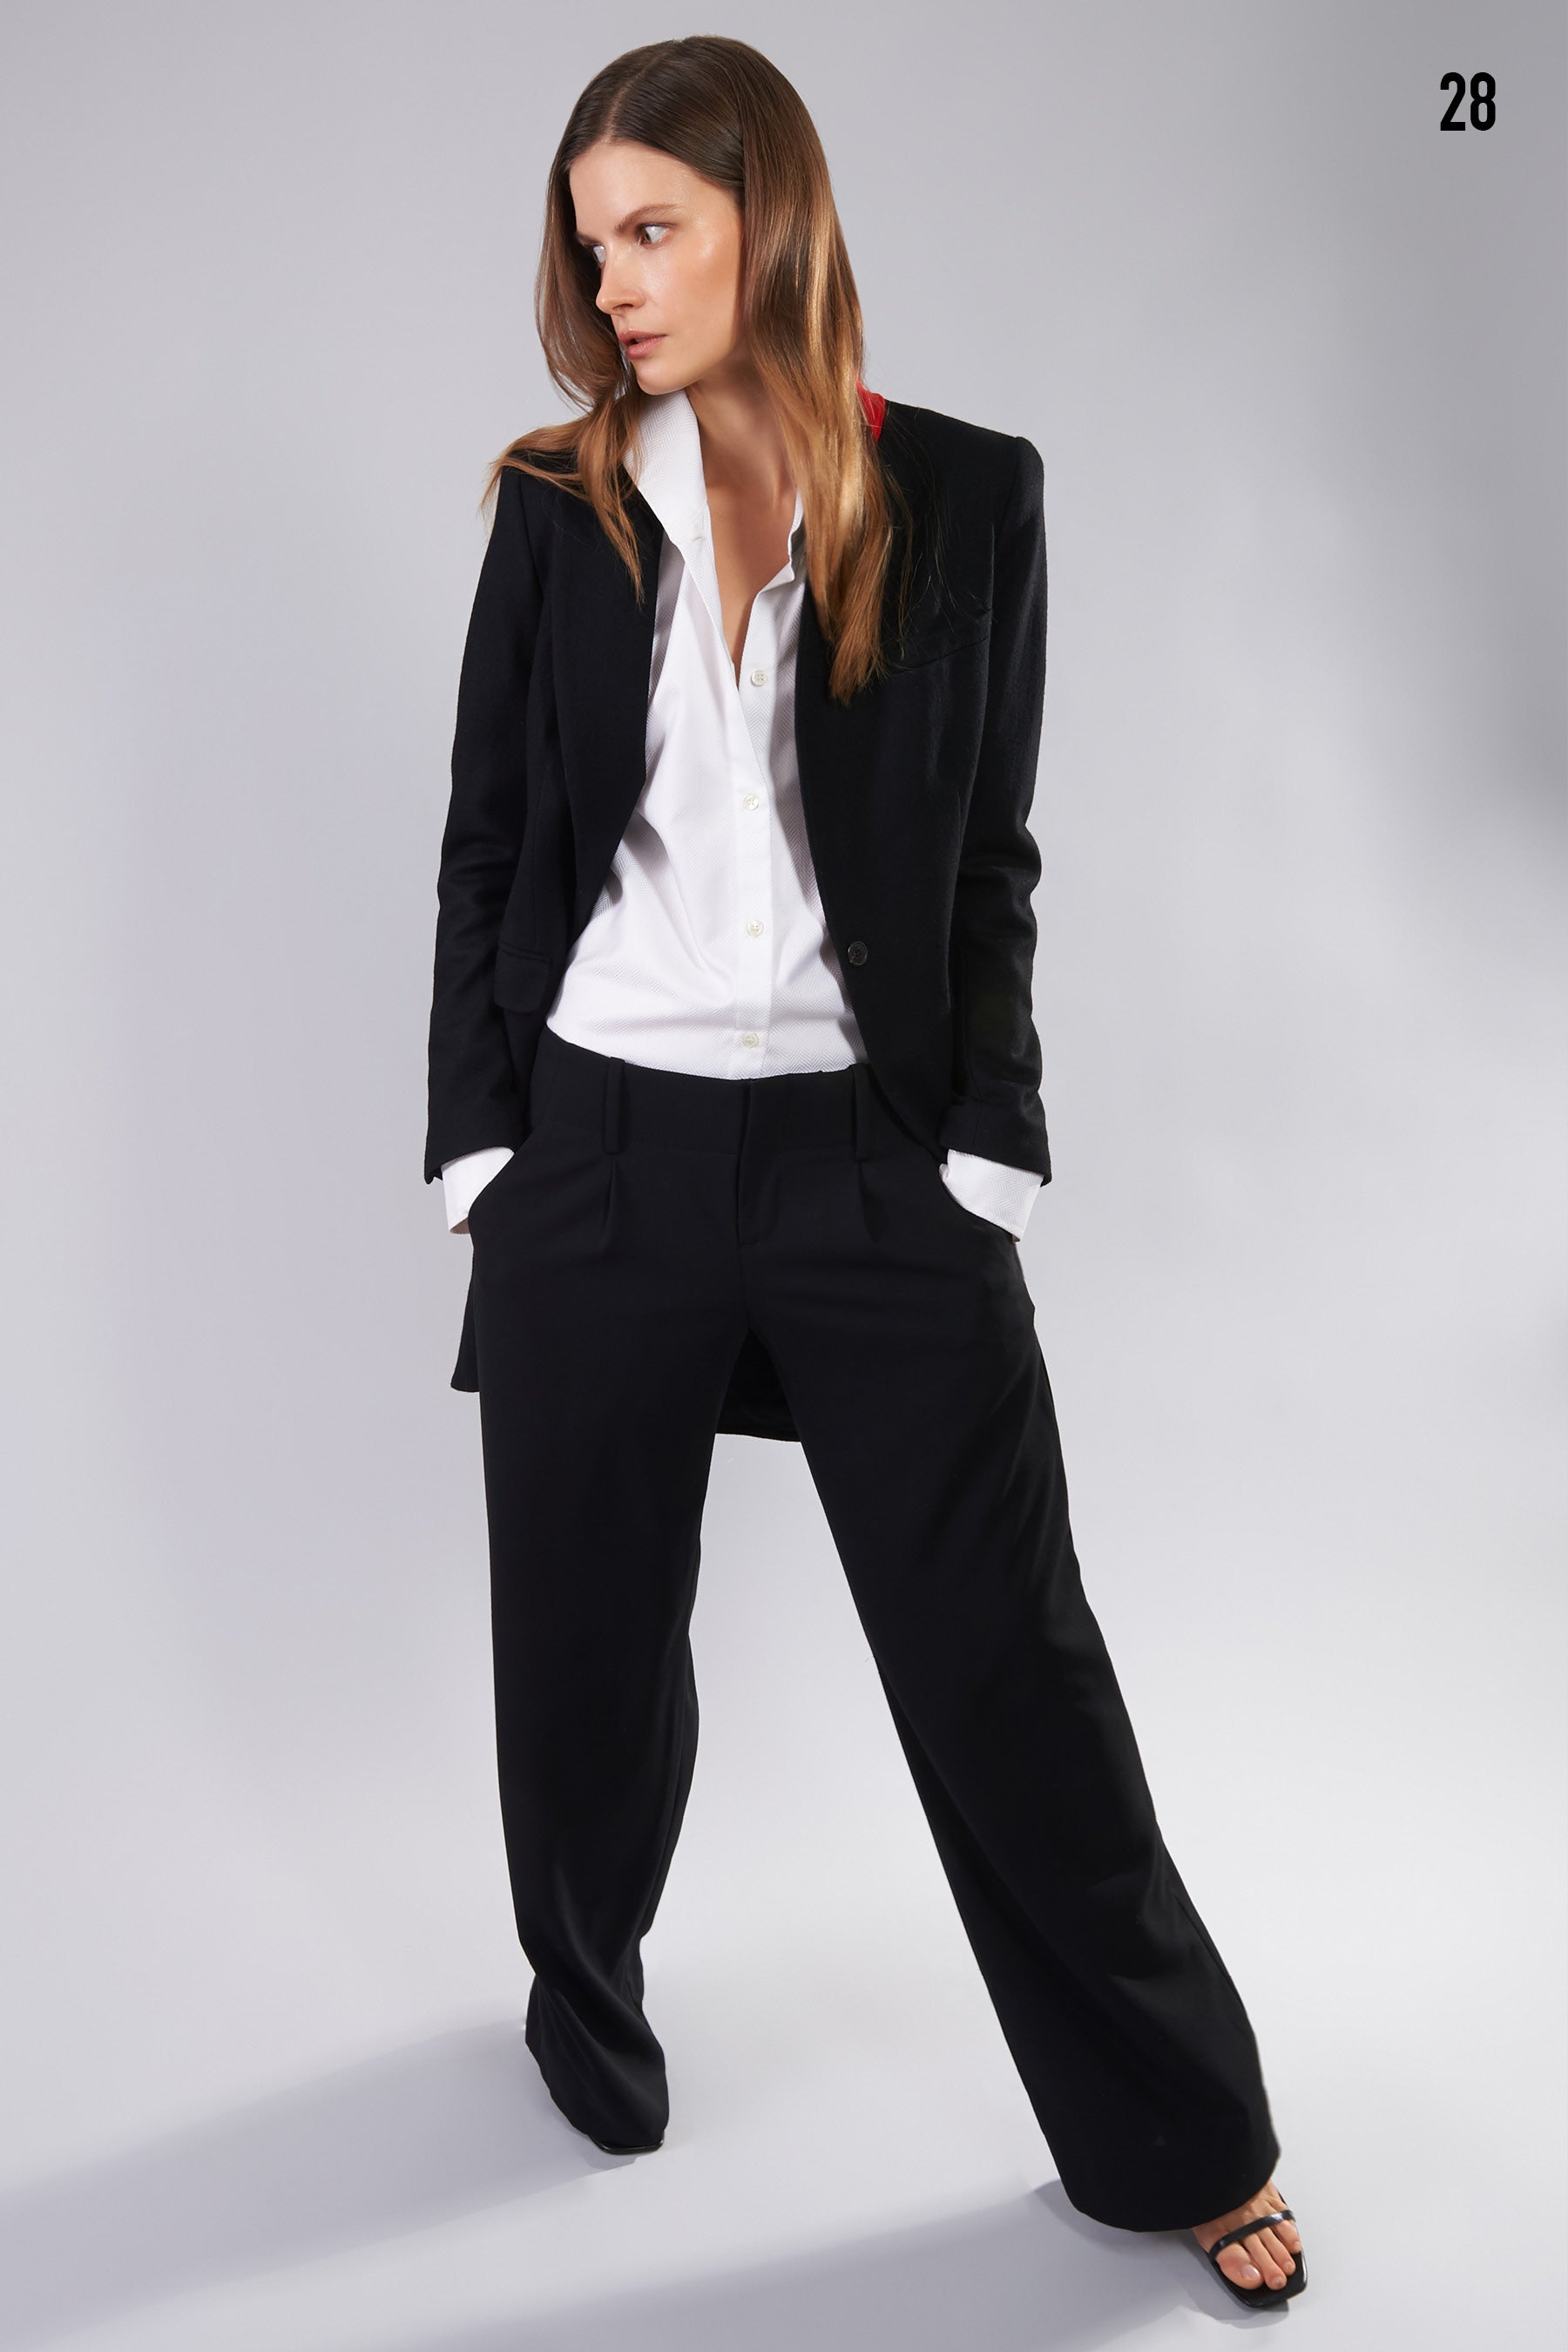 Kal Rieman Fall 2019 Lookbook Look 28